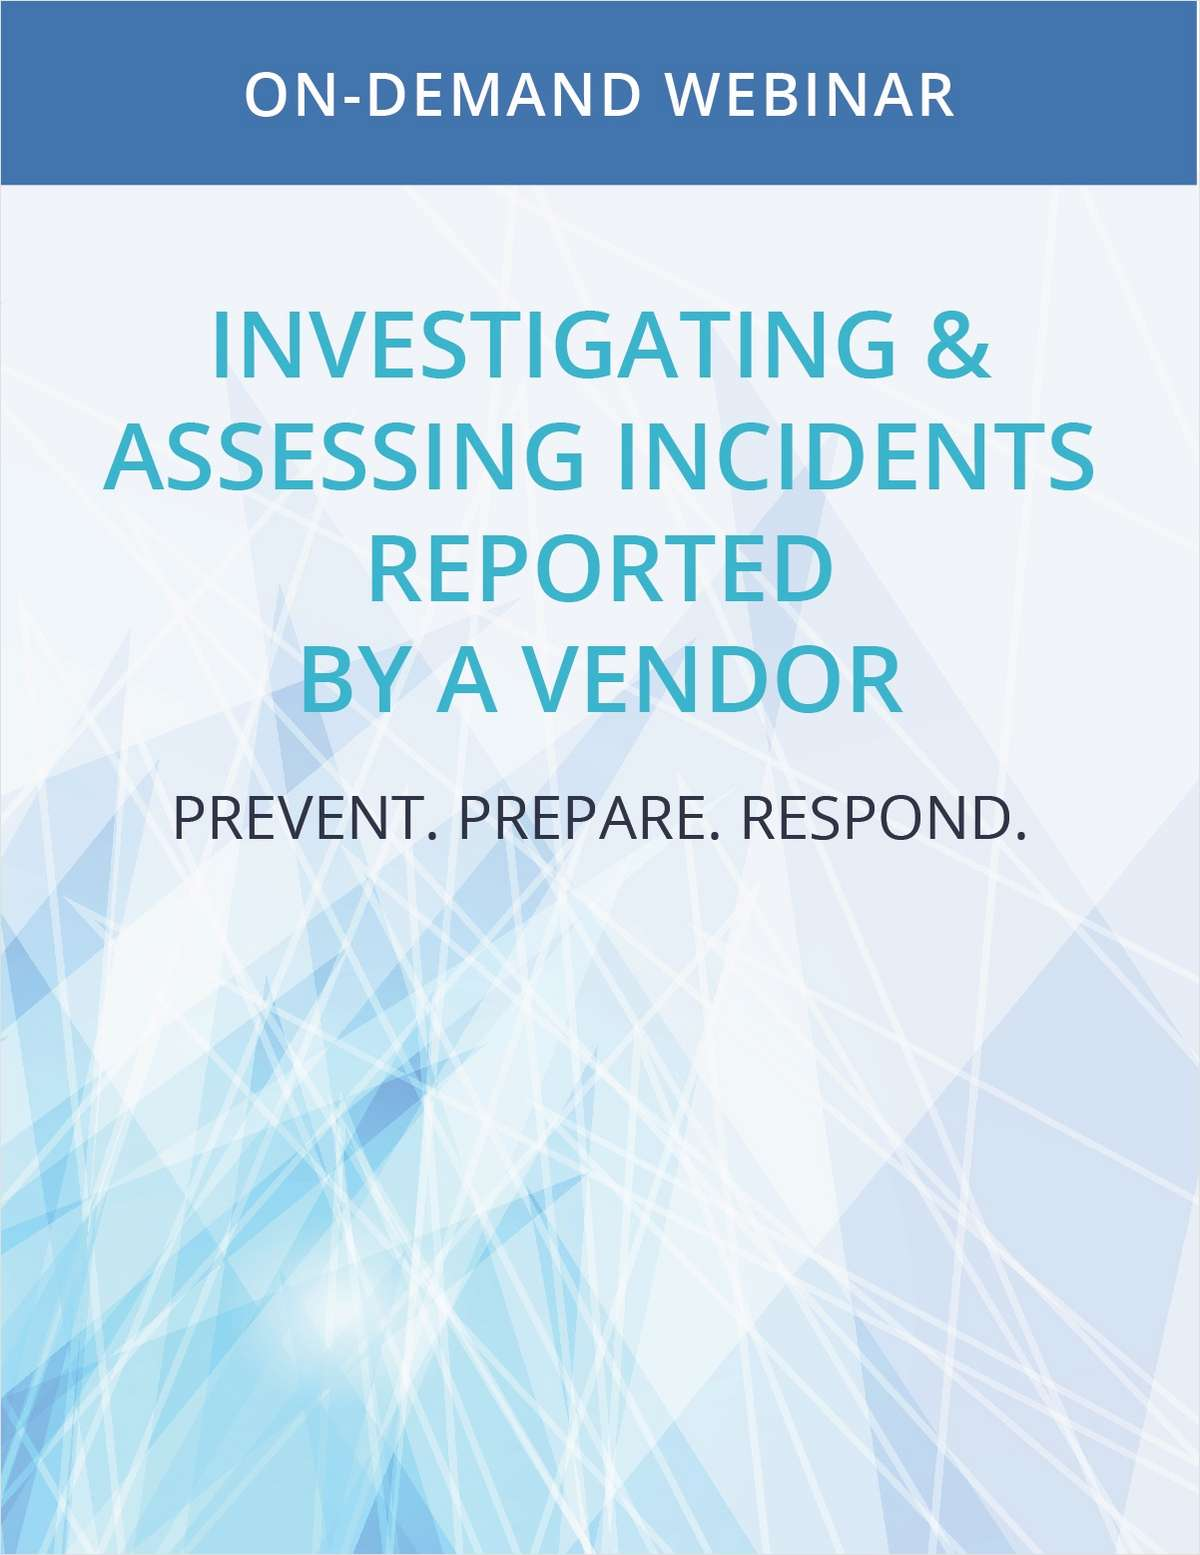 Investigating & Assessing Incidents Reported by a Vendor